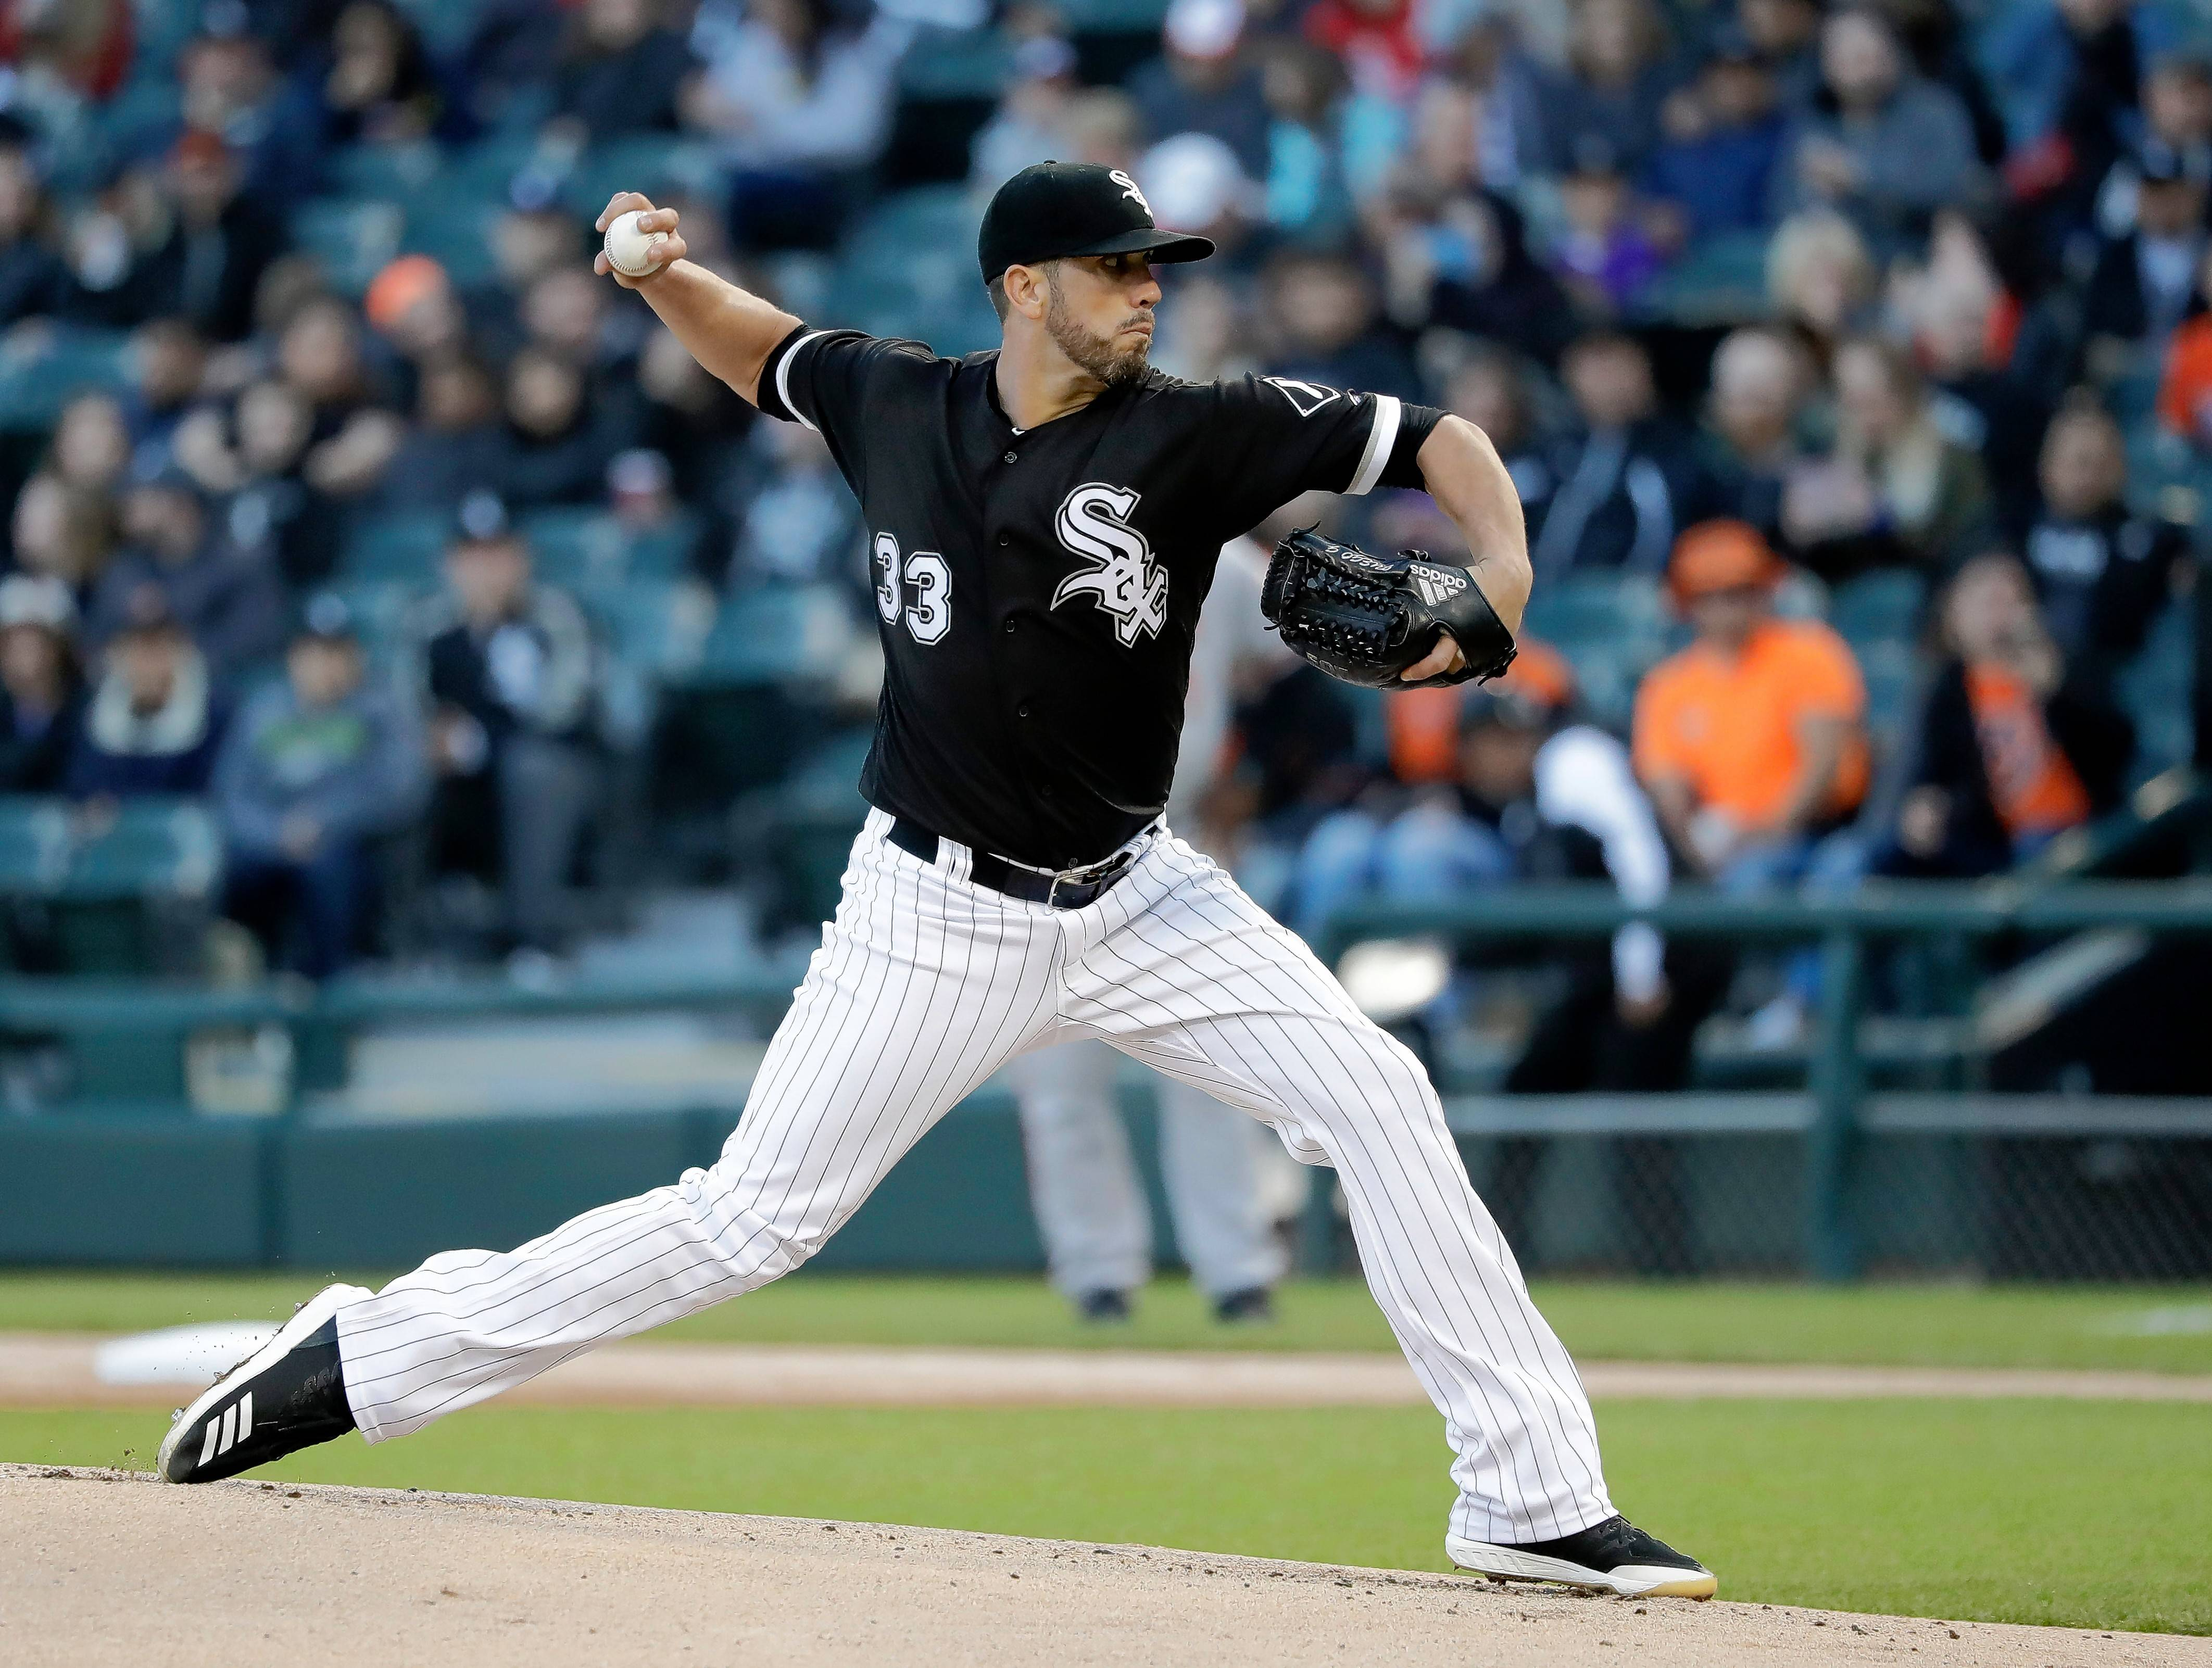 Chicago White Sox starting pitcher James Shields delivers during the first inning of a baseball game against the Baltimore Orioles Tuesday, May 22, 2018, in Chicago.